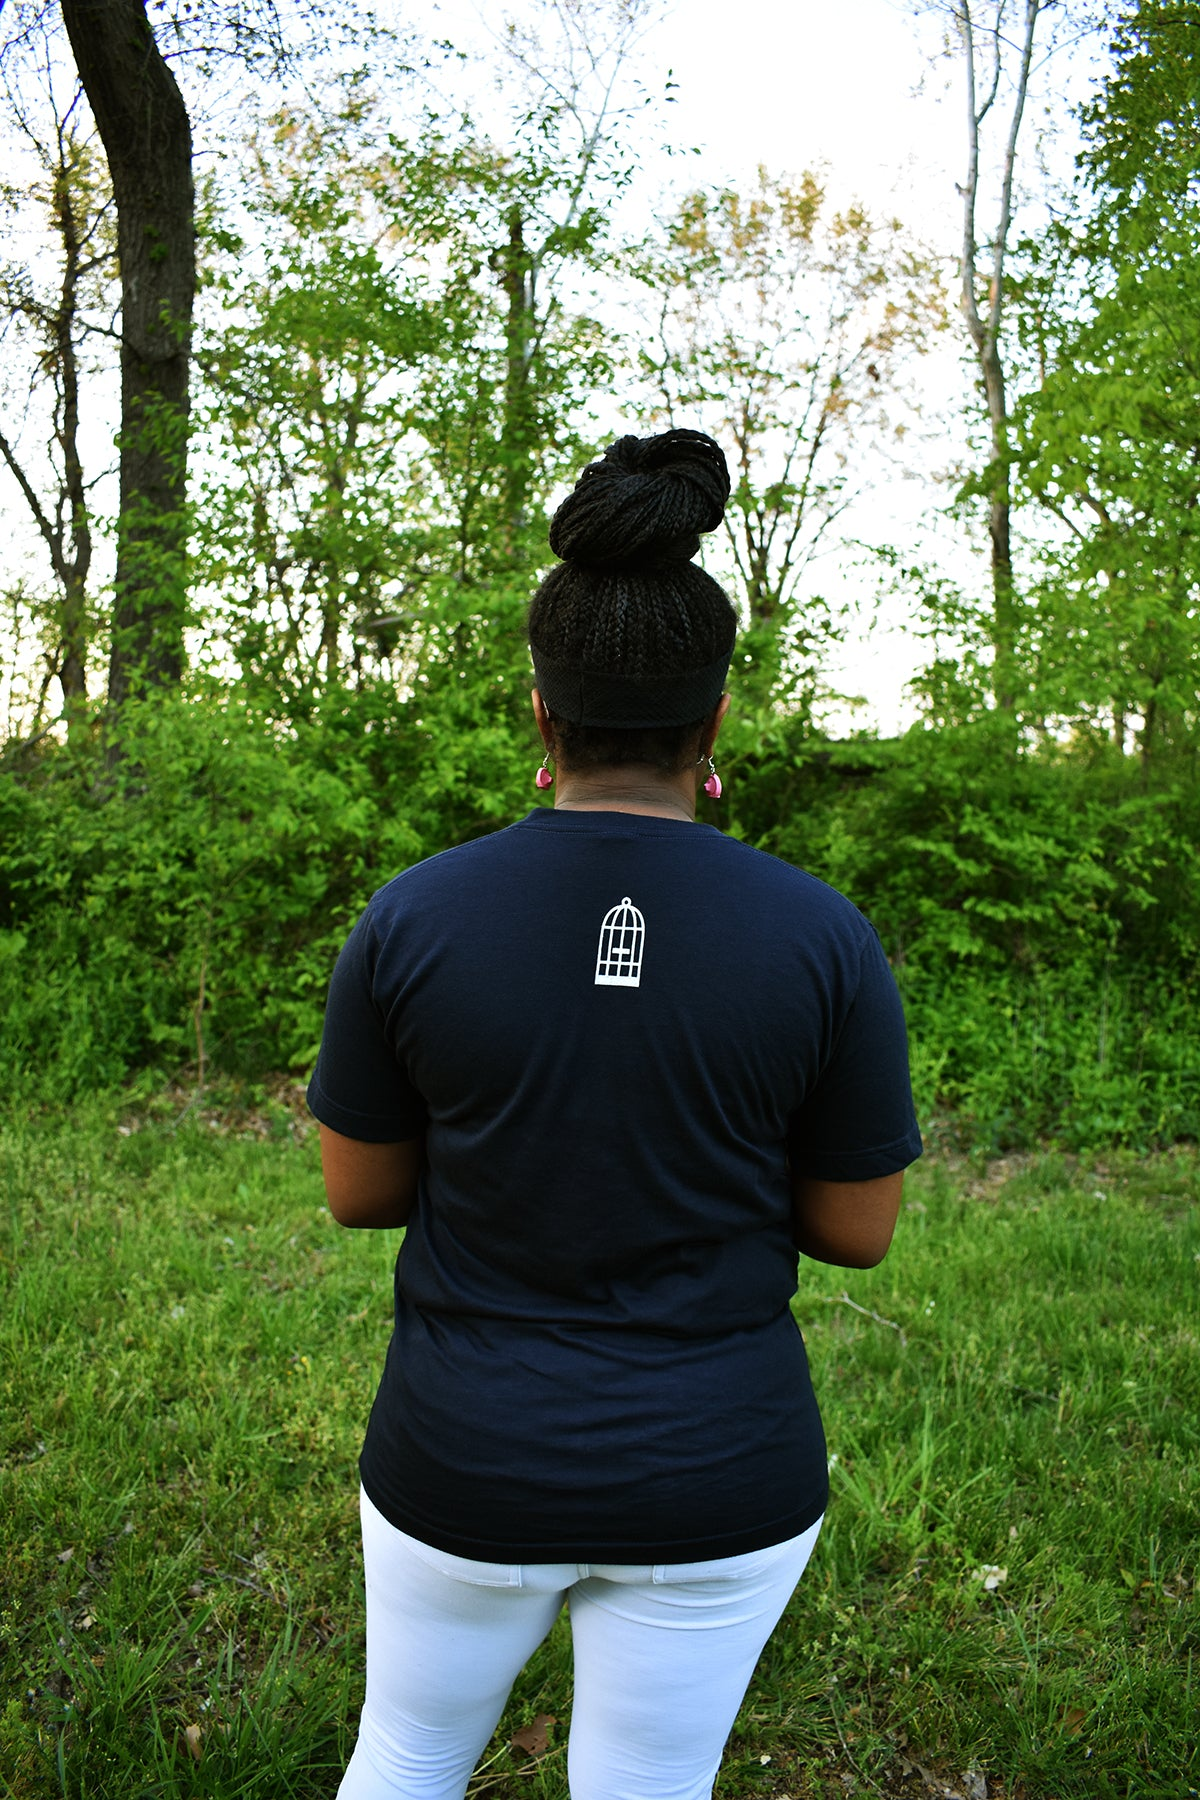 Female model wearing v-neck navy t-shirt with a small, No Egrets Birdcage logo in white on the back between the shoulders.